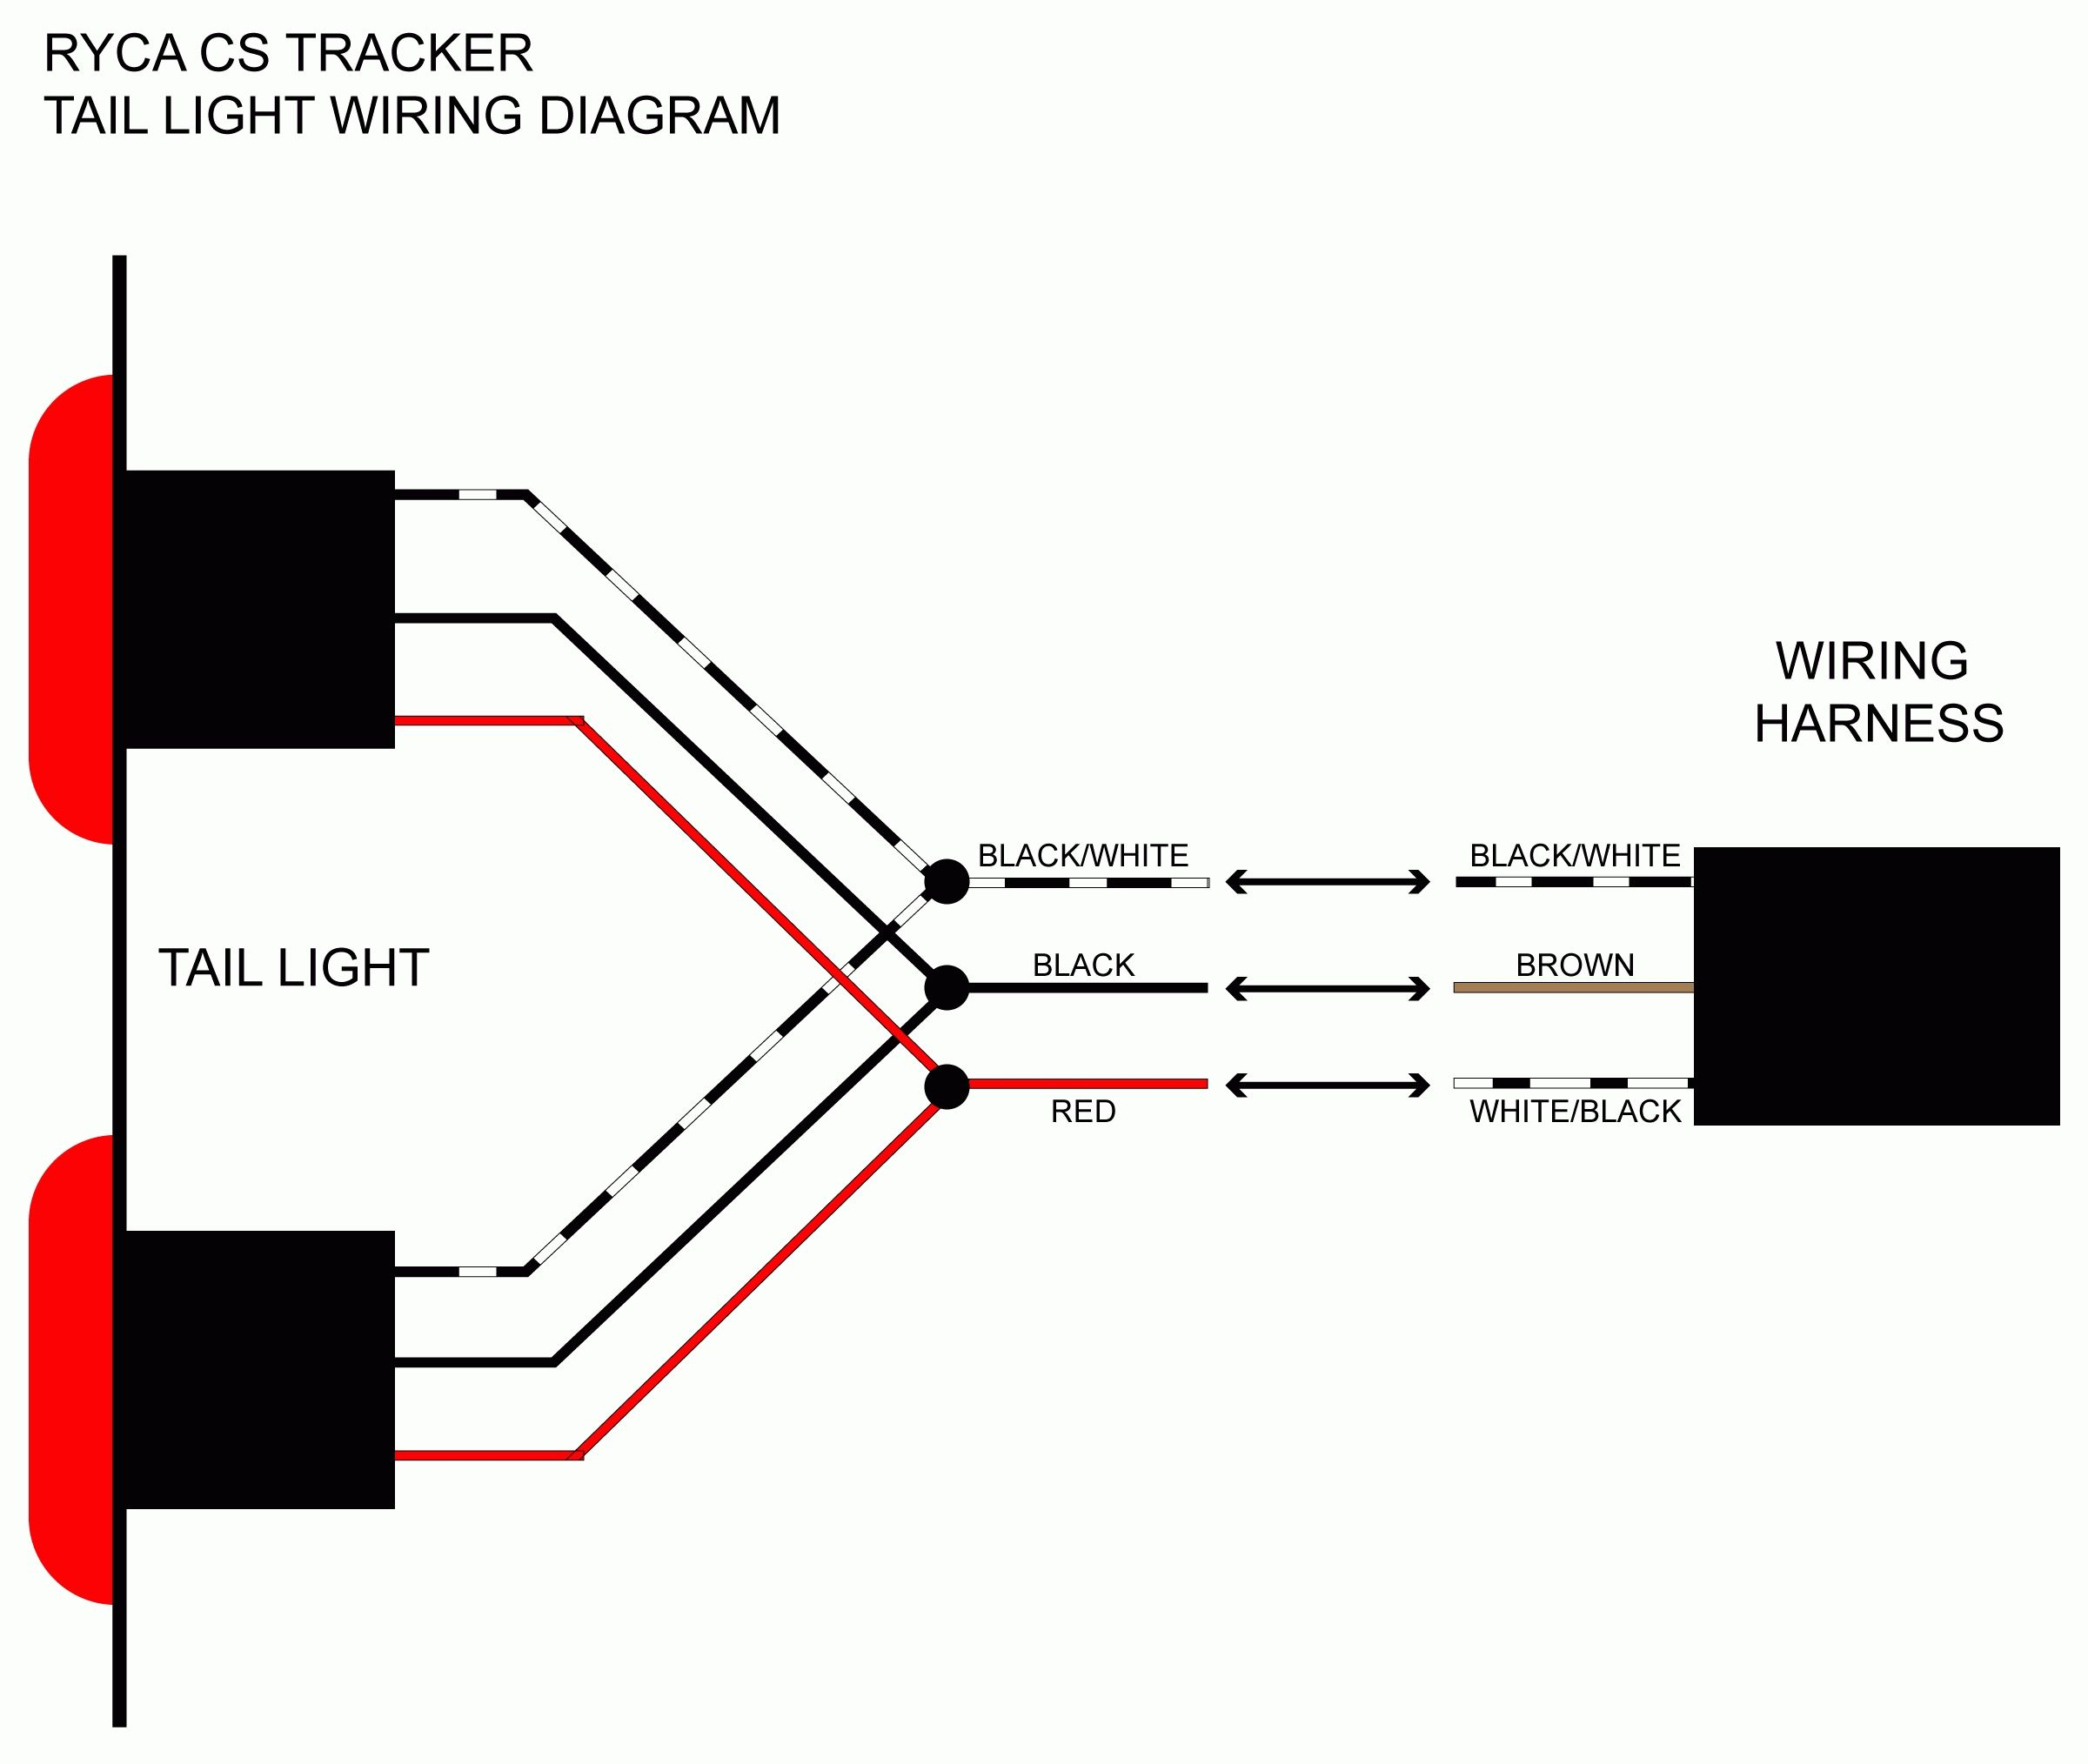 wiring diagram for led tail lights fitfathers me unusual 2002 f150 trailer wiring diagram trailer wiring diagram tail lights #4